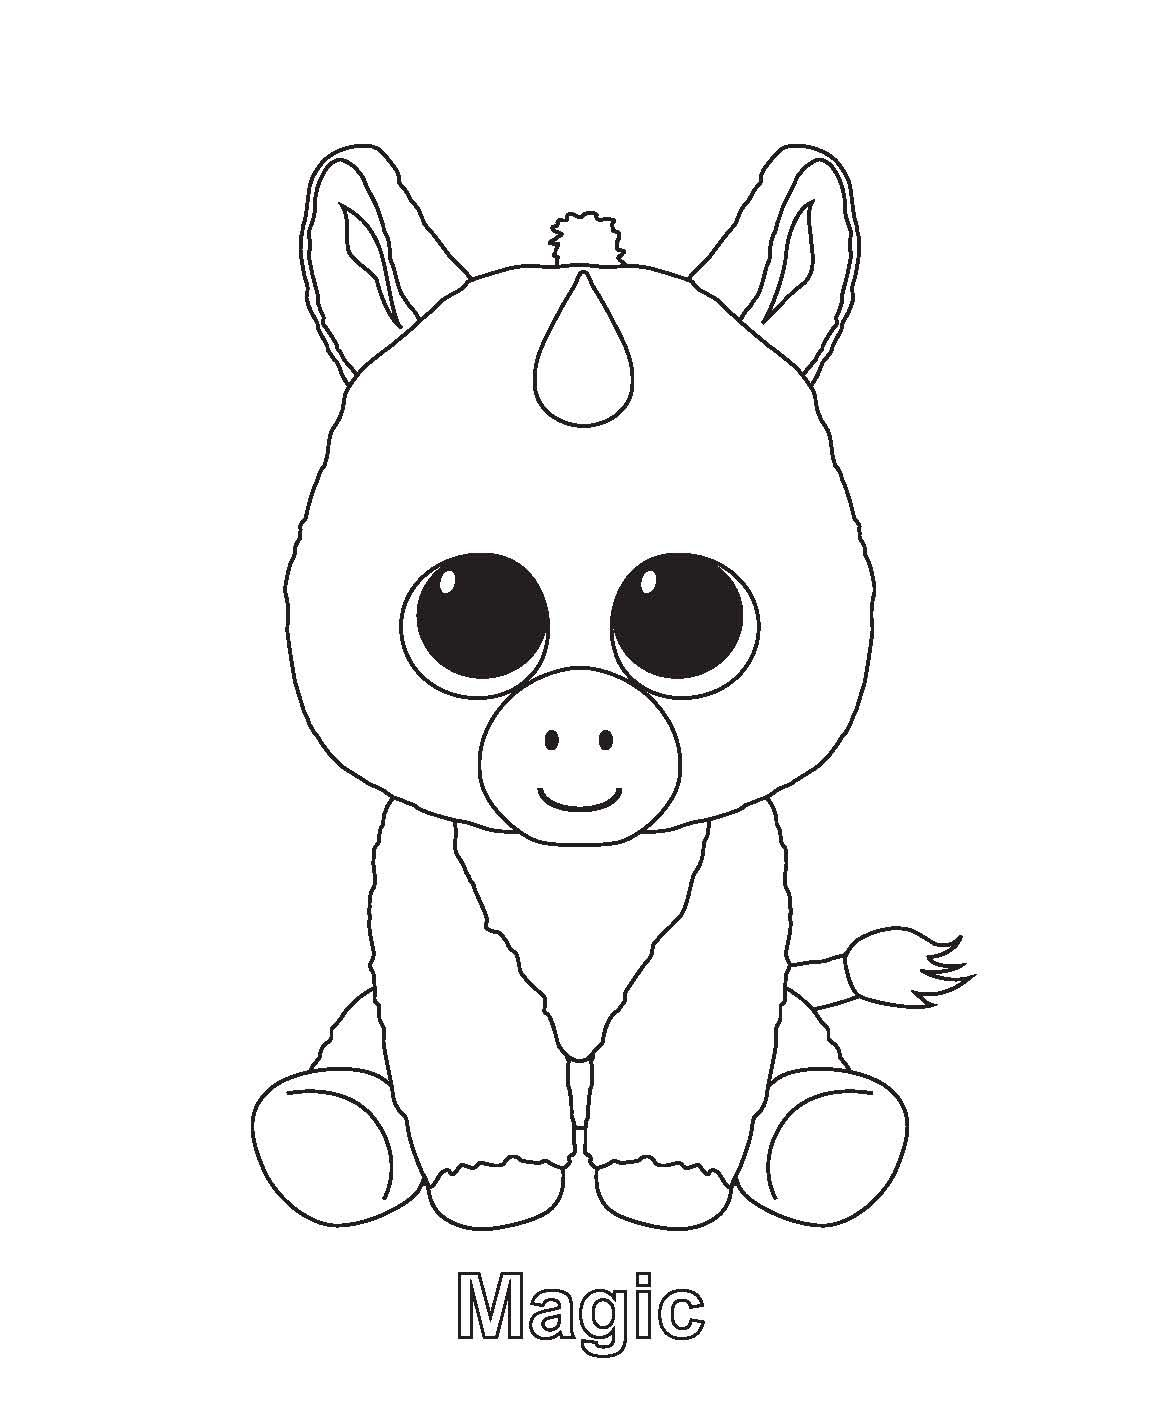 Beanie Boo Coloring Pages Photo 12 Baby Unicorn Unicorn Coloring Pages Beanie Boo Birthdays